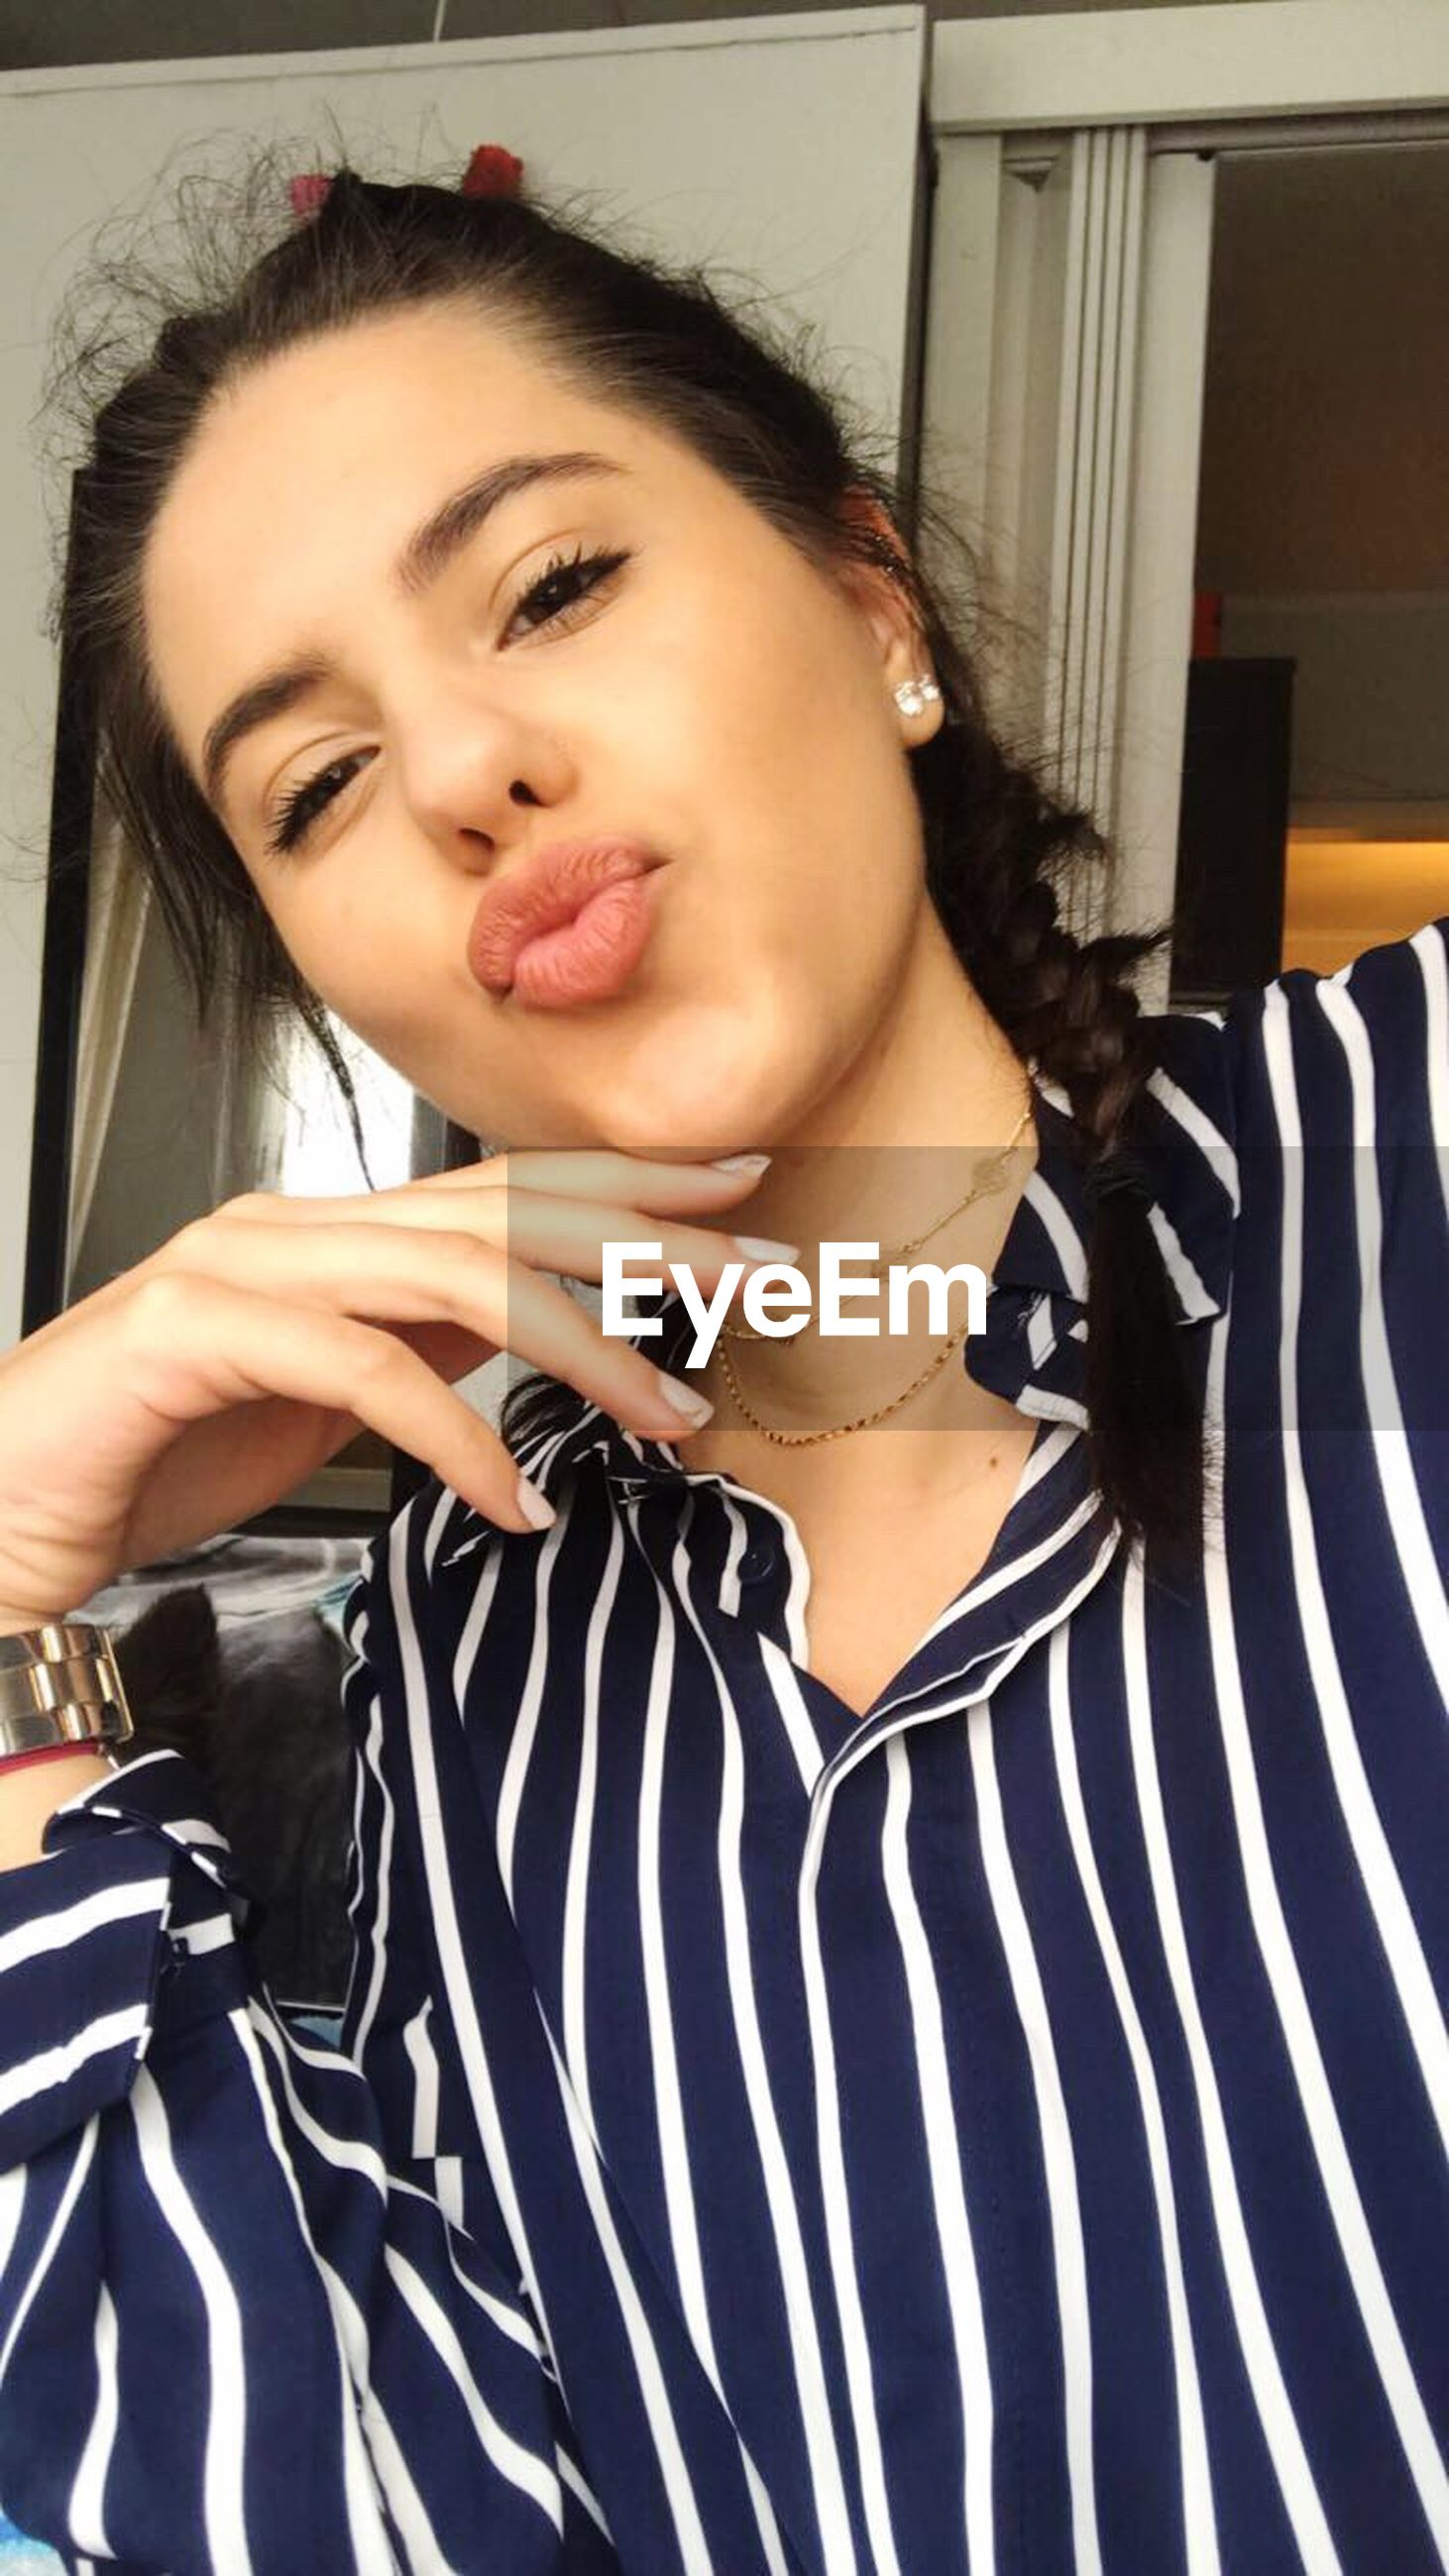 lifestyles, only women, fashion, young adult, one woman only, adults only, front view, adult, one person, beauty, beautiful people, human body part, women, people, one young woman only, real people, beautiful woman, young women, human hand, indoors, human lips, day